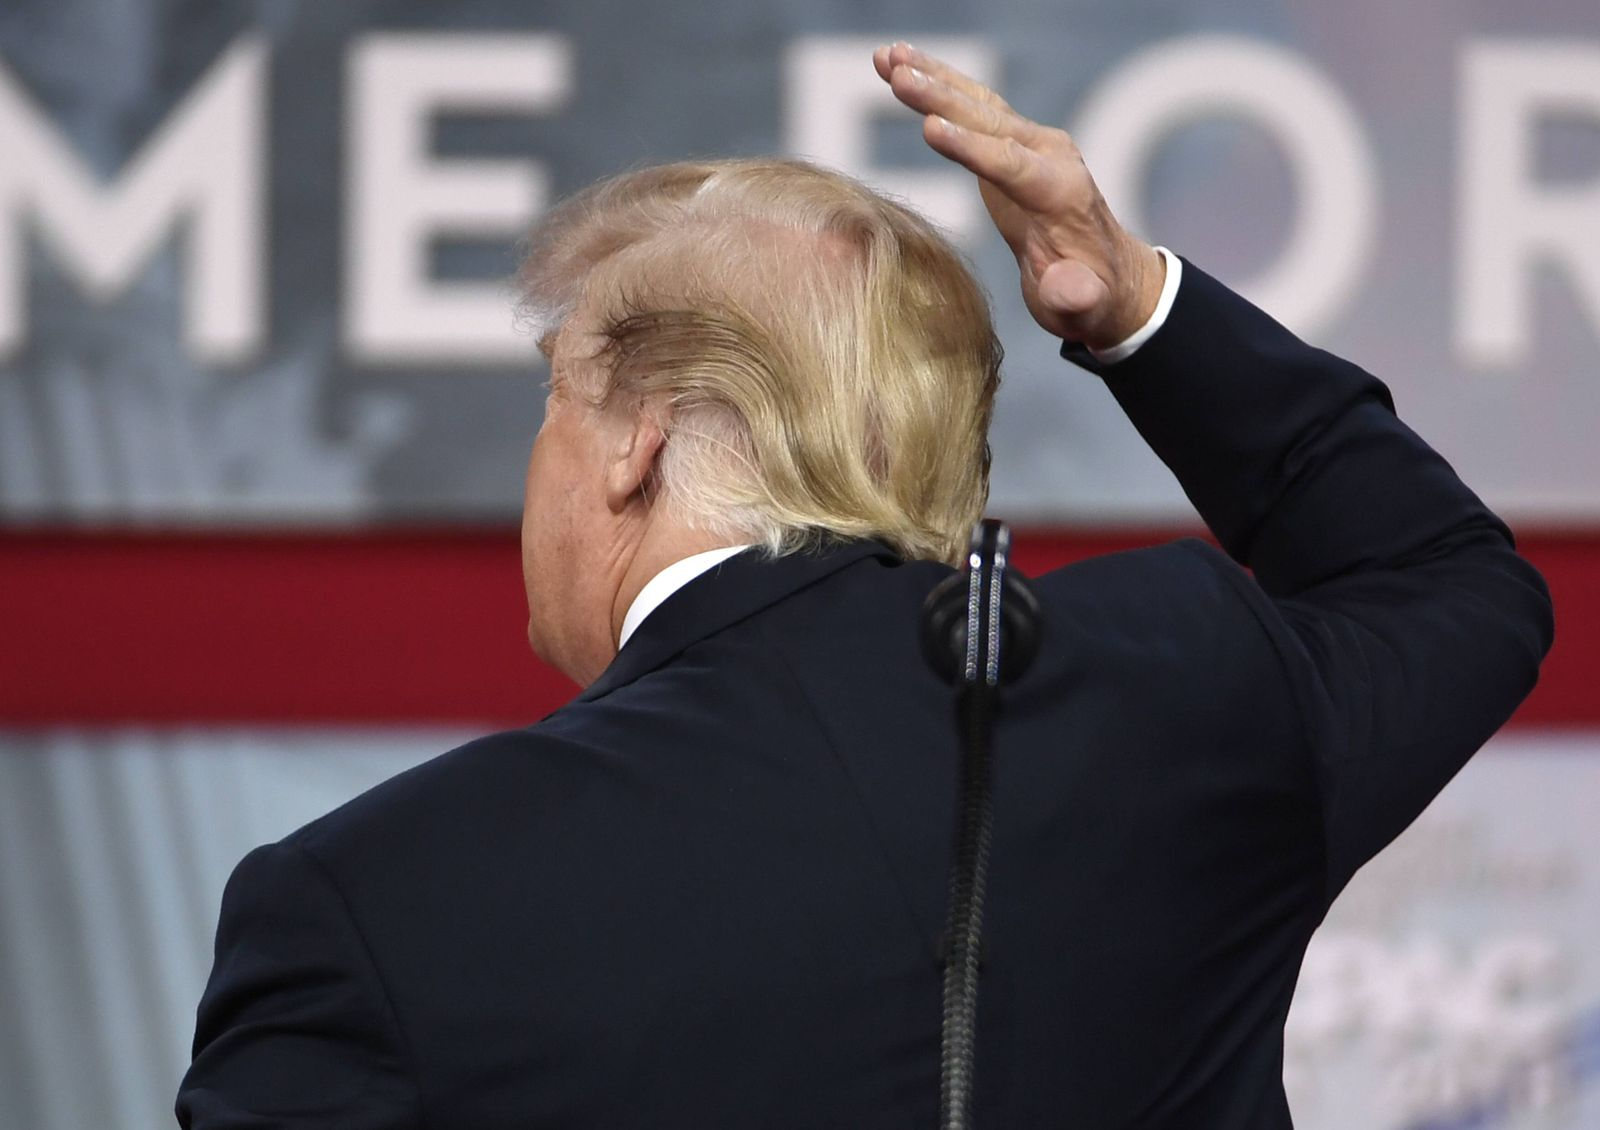 President Donald Trump playfully checks his hair after seeing it on a monitor prior to making remark